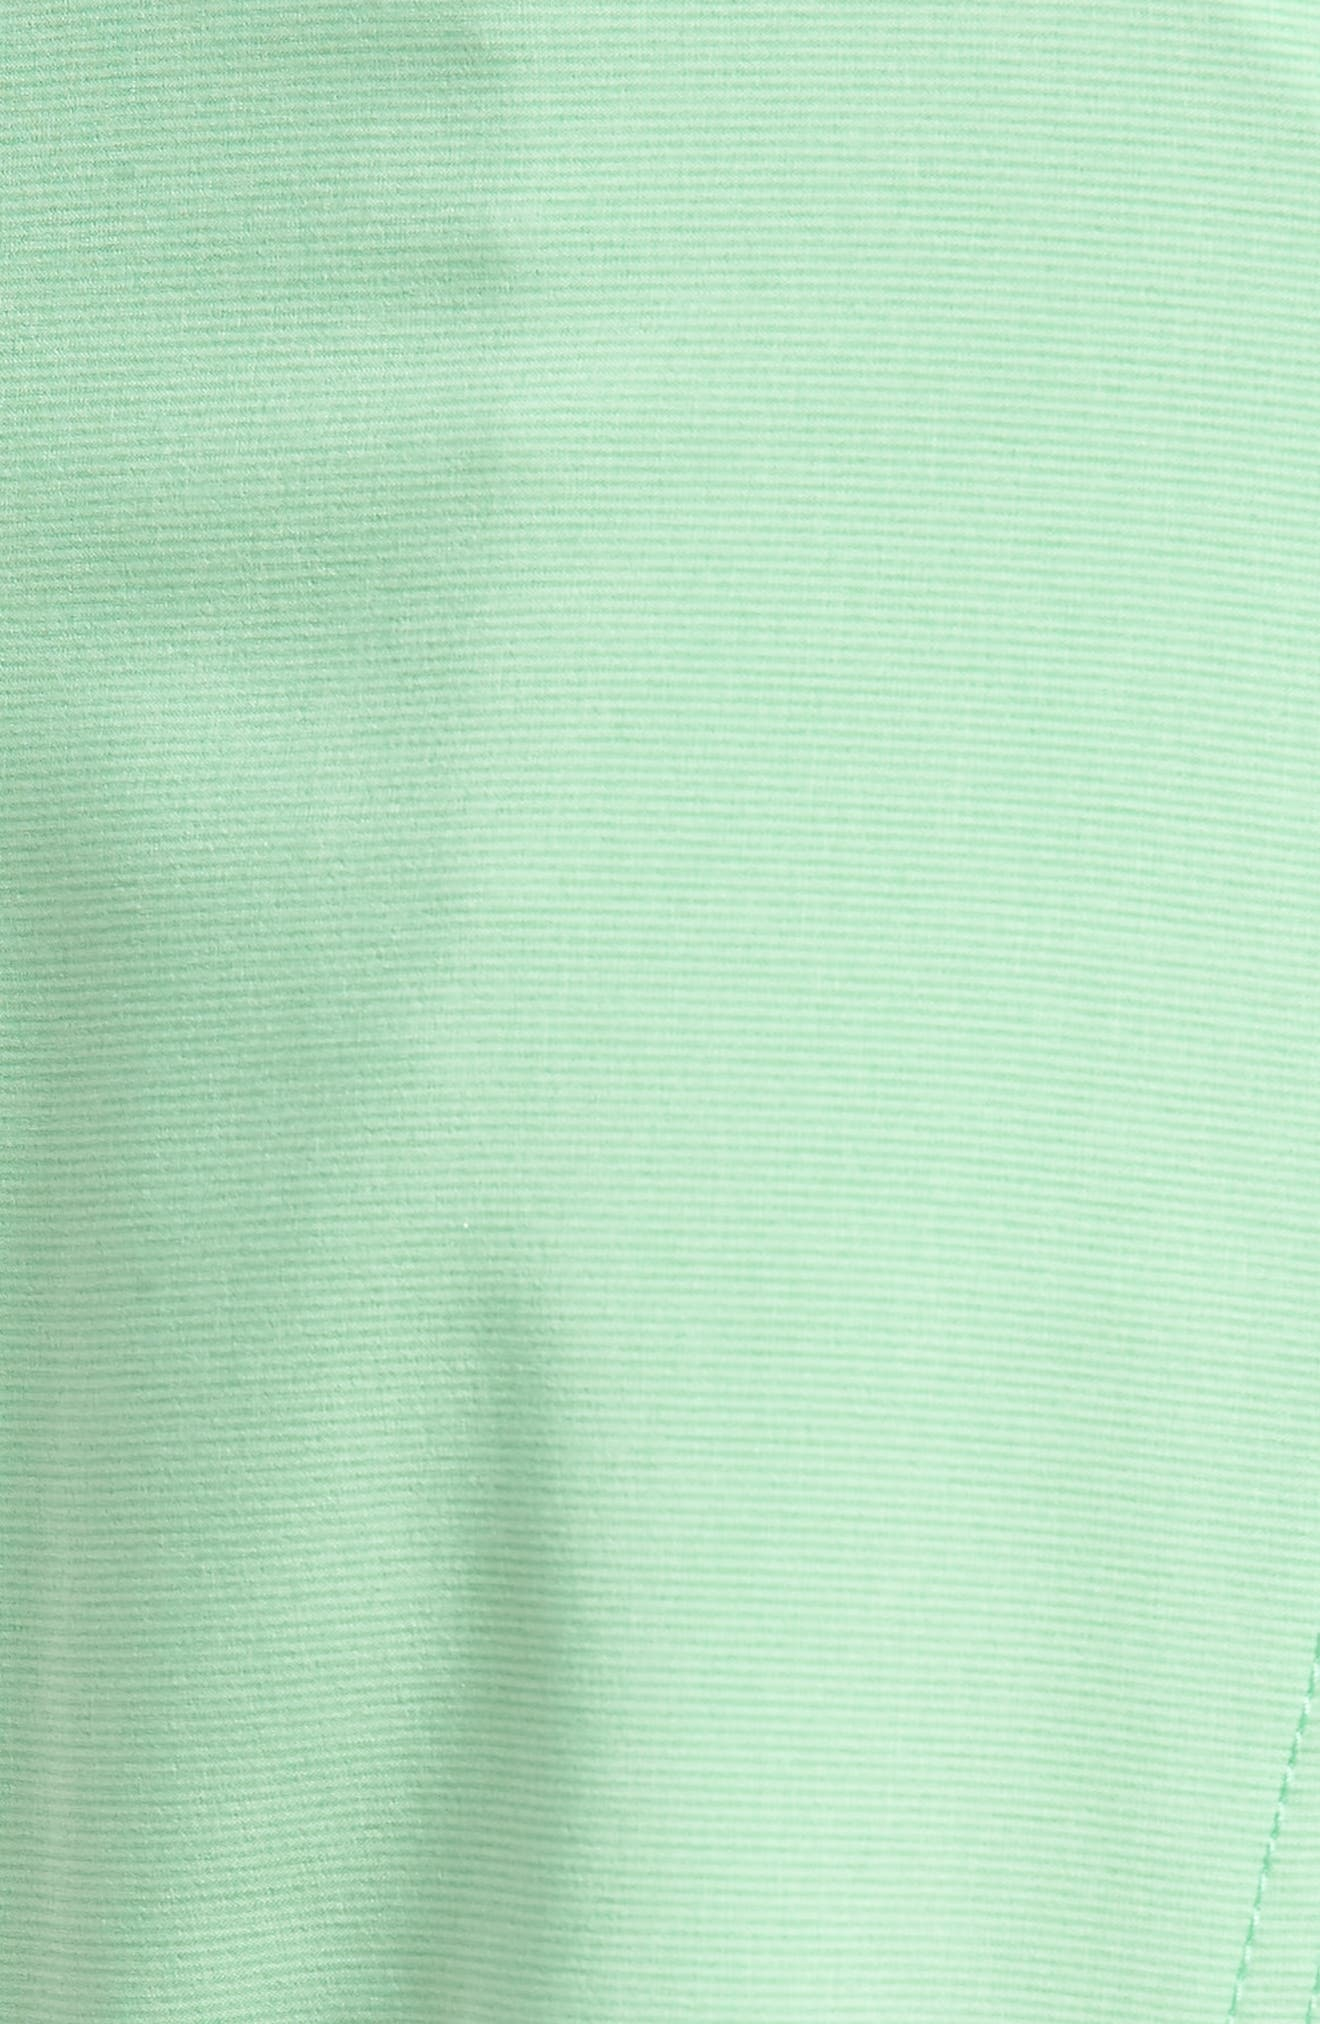 Lido Mod Board Shorts,                             Alternate thumbnail 5, color,                             Poison Green